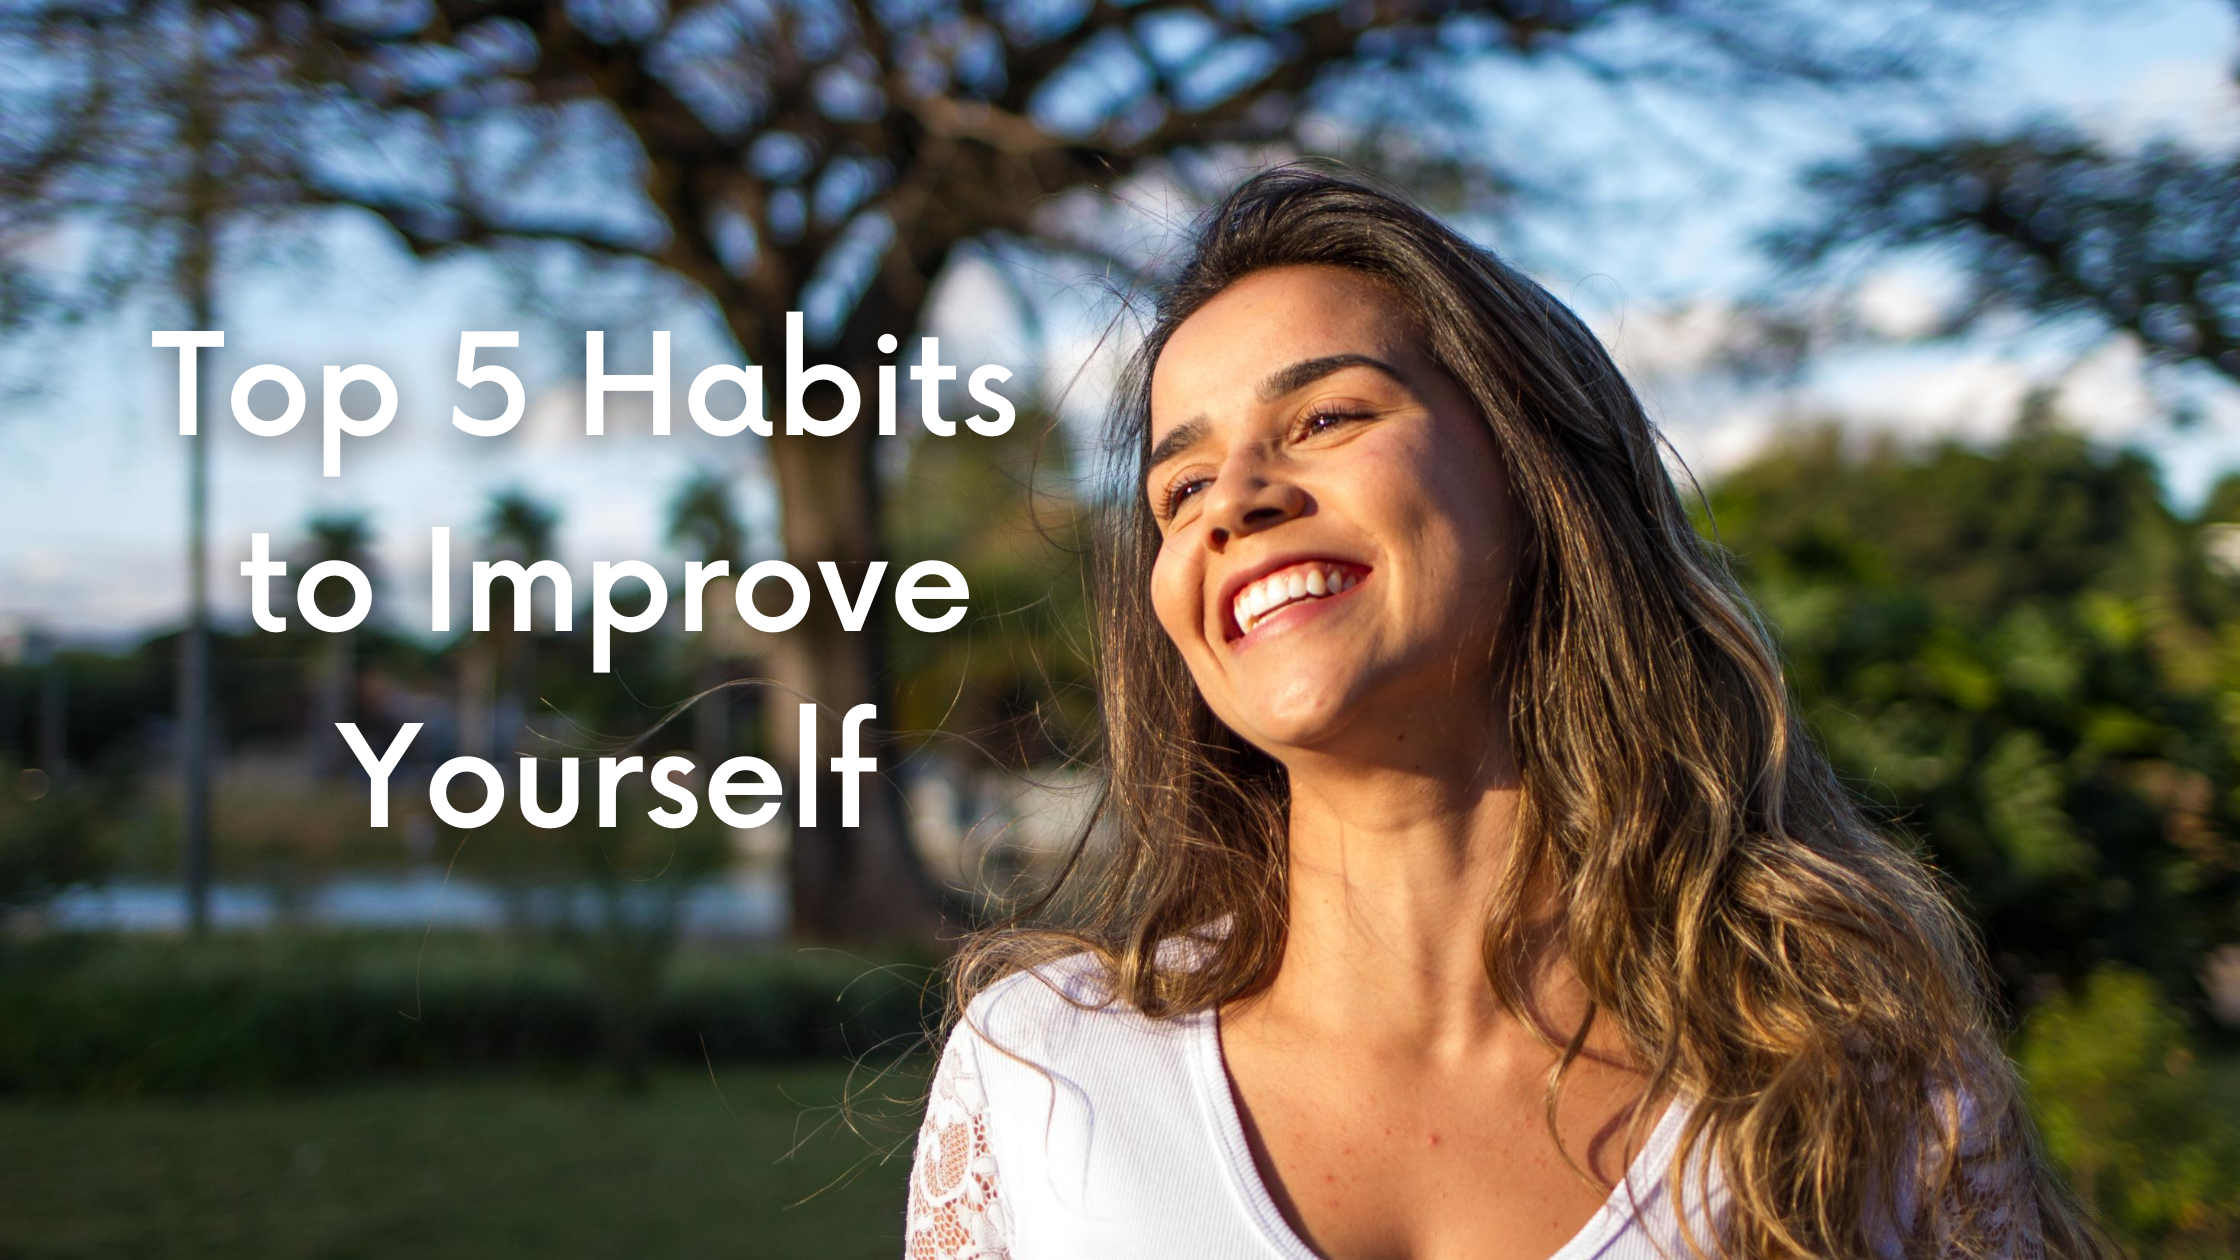 Top 5 Habits for Self Improvement